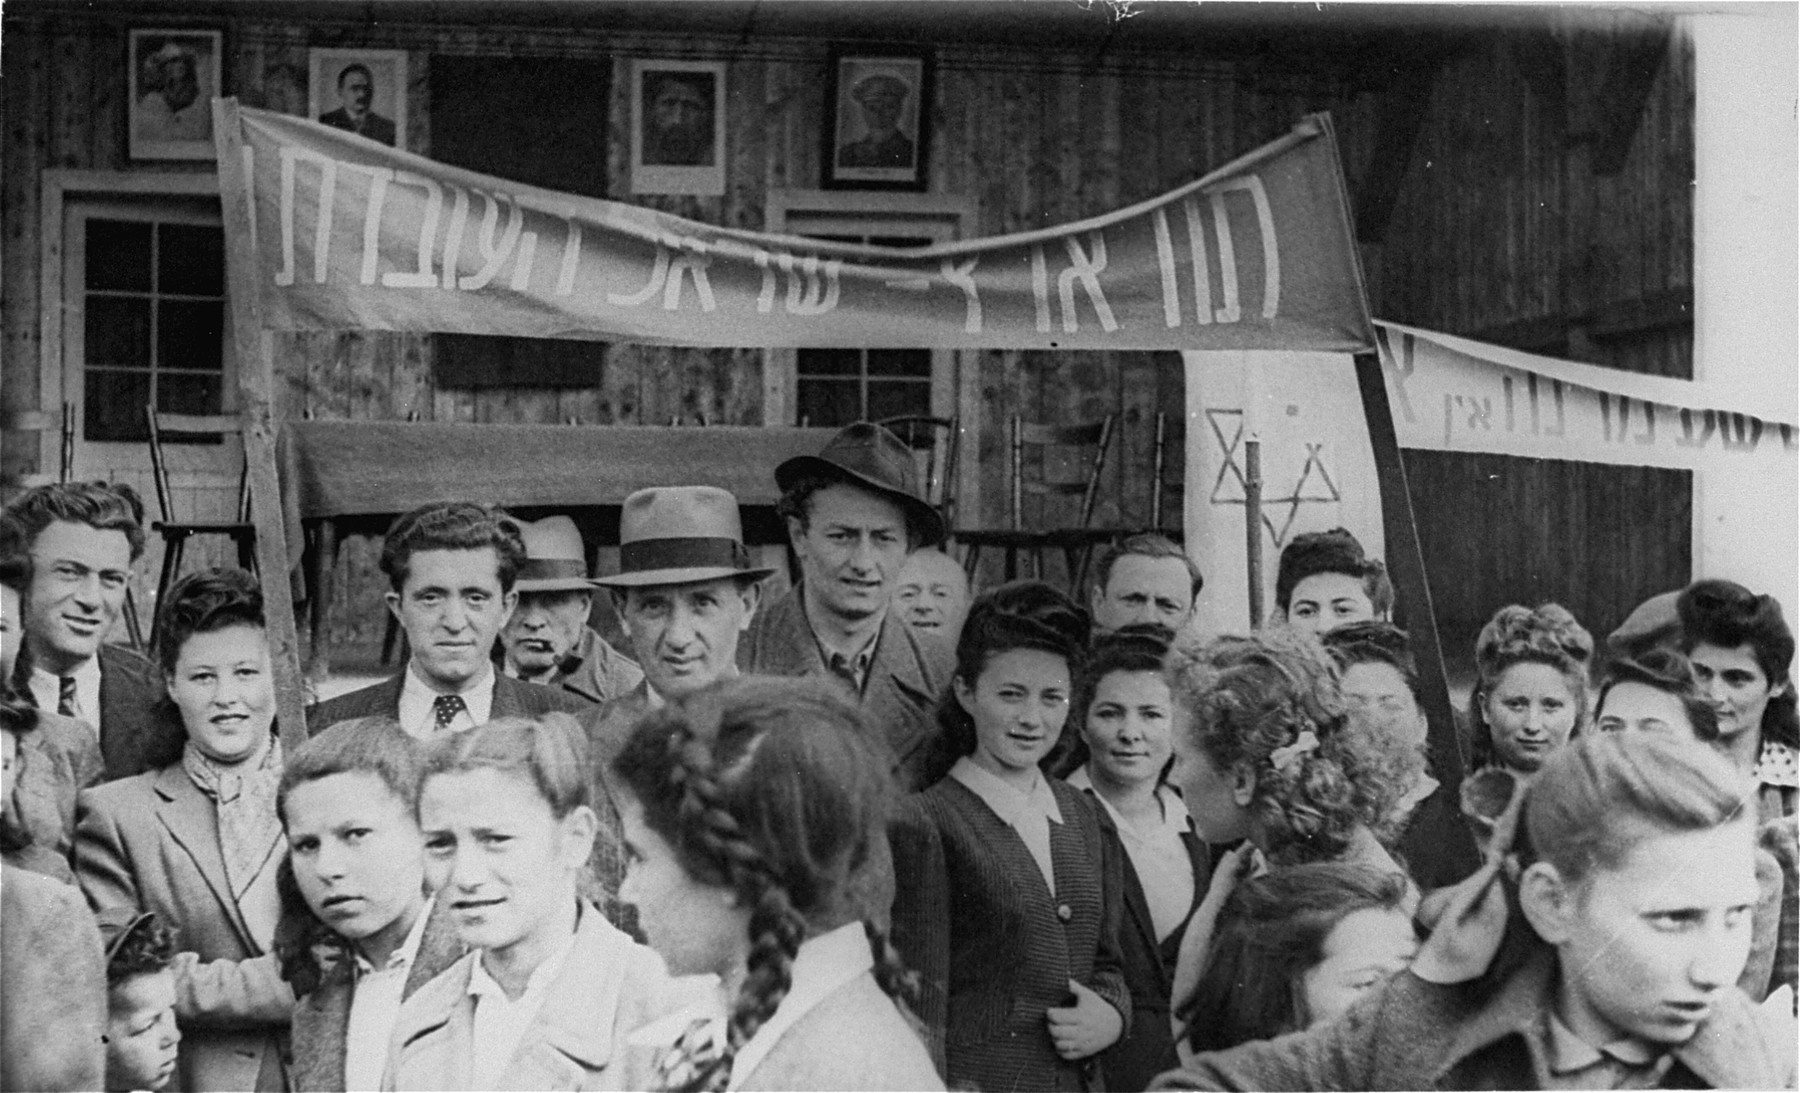 Jewish DPs participate in a demonstration calling for unrestricted immigration to Palestine at the Neu Freimann displaced persons camp.  The second person from the left is Lilly Scherb (maiden name, Kleidermacher, who was the aunt of Aaron Elster. The little boy just below her elbow is her baby brother who later was run over by a truck and killed in the camp. The young ladies in front were fellow schoolmates of Aaron.